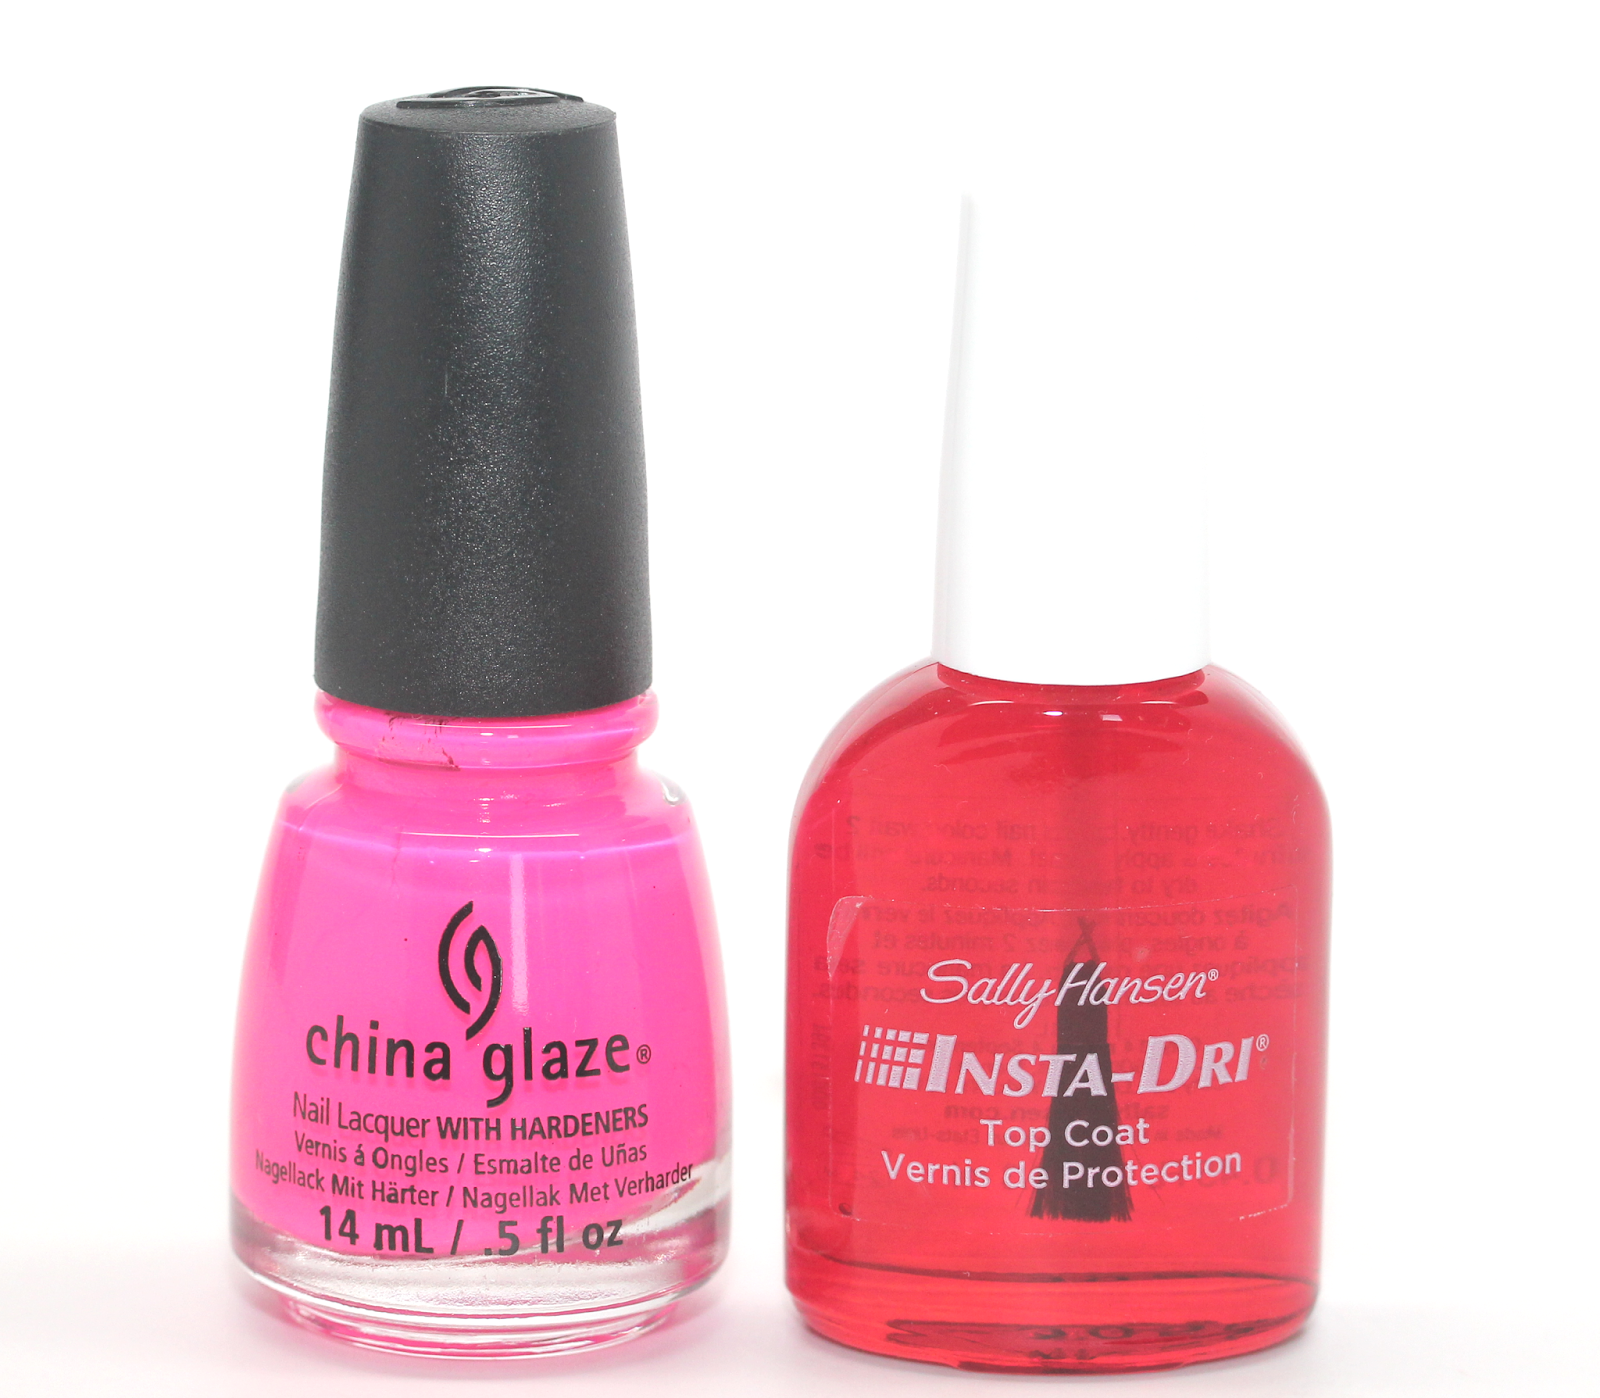 EBAY BEAUTY HAUL: BOSCIA, BUMBLE AND BUMBLE, CHINA GLAZE, ESSIE ...